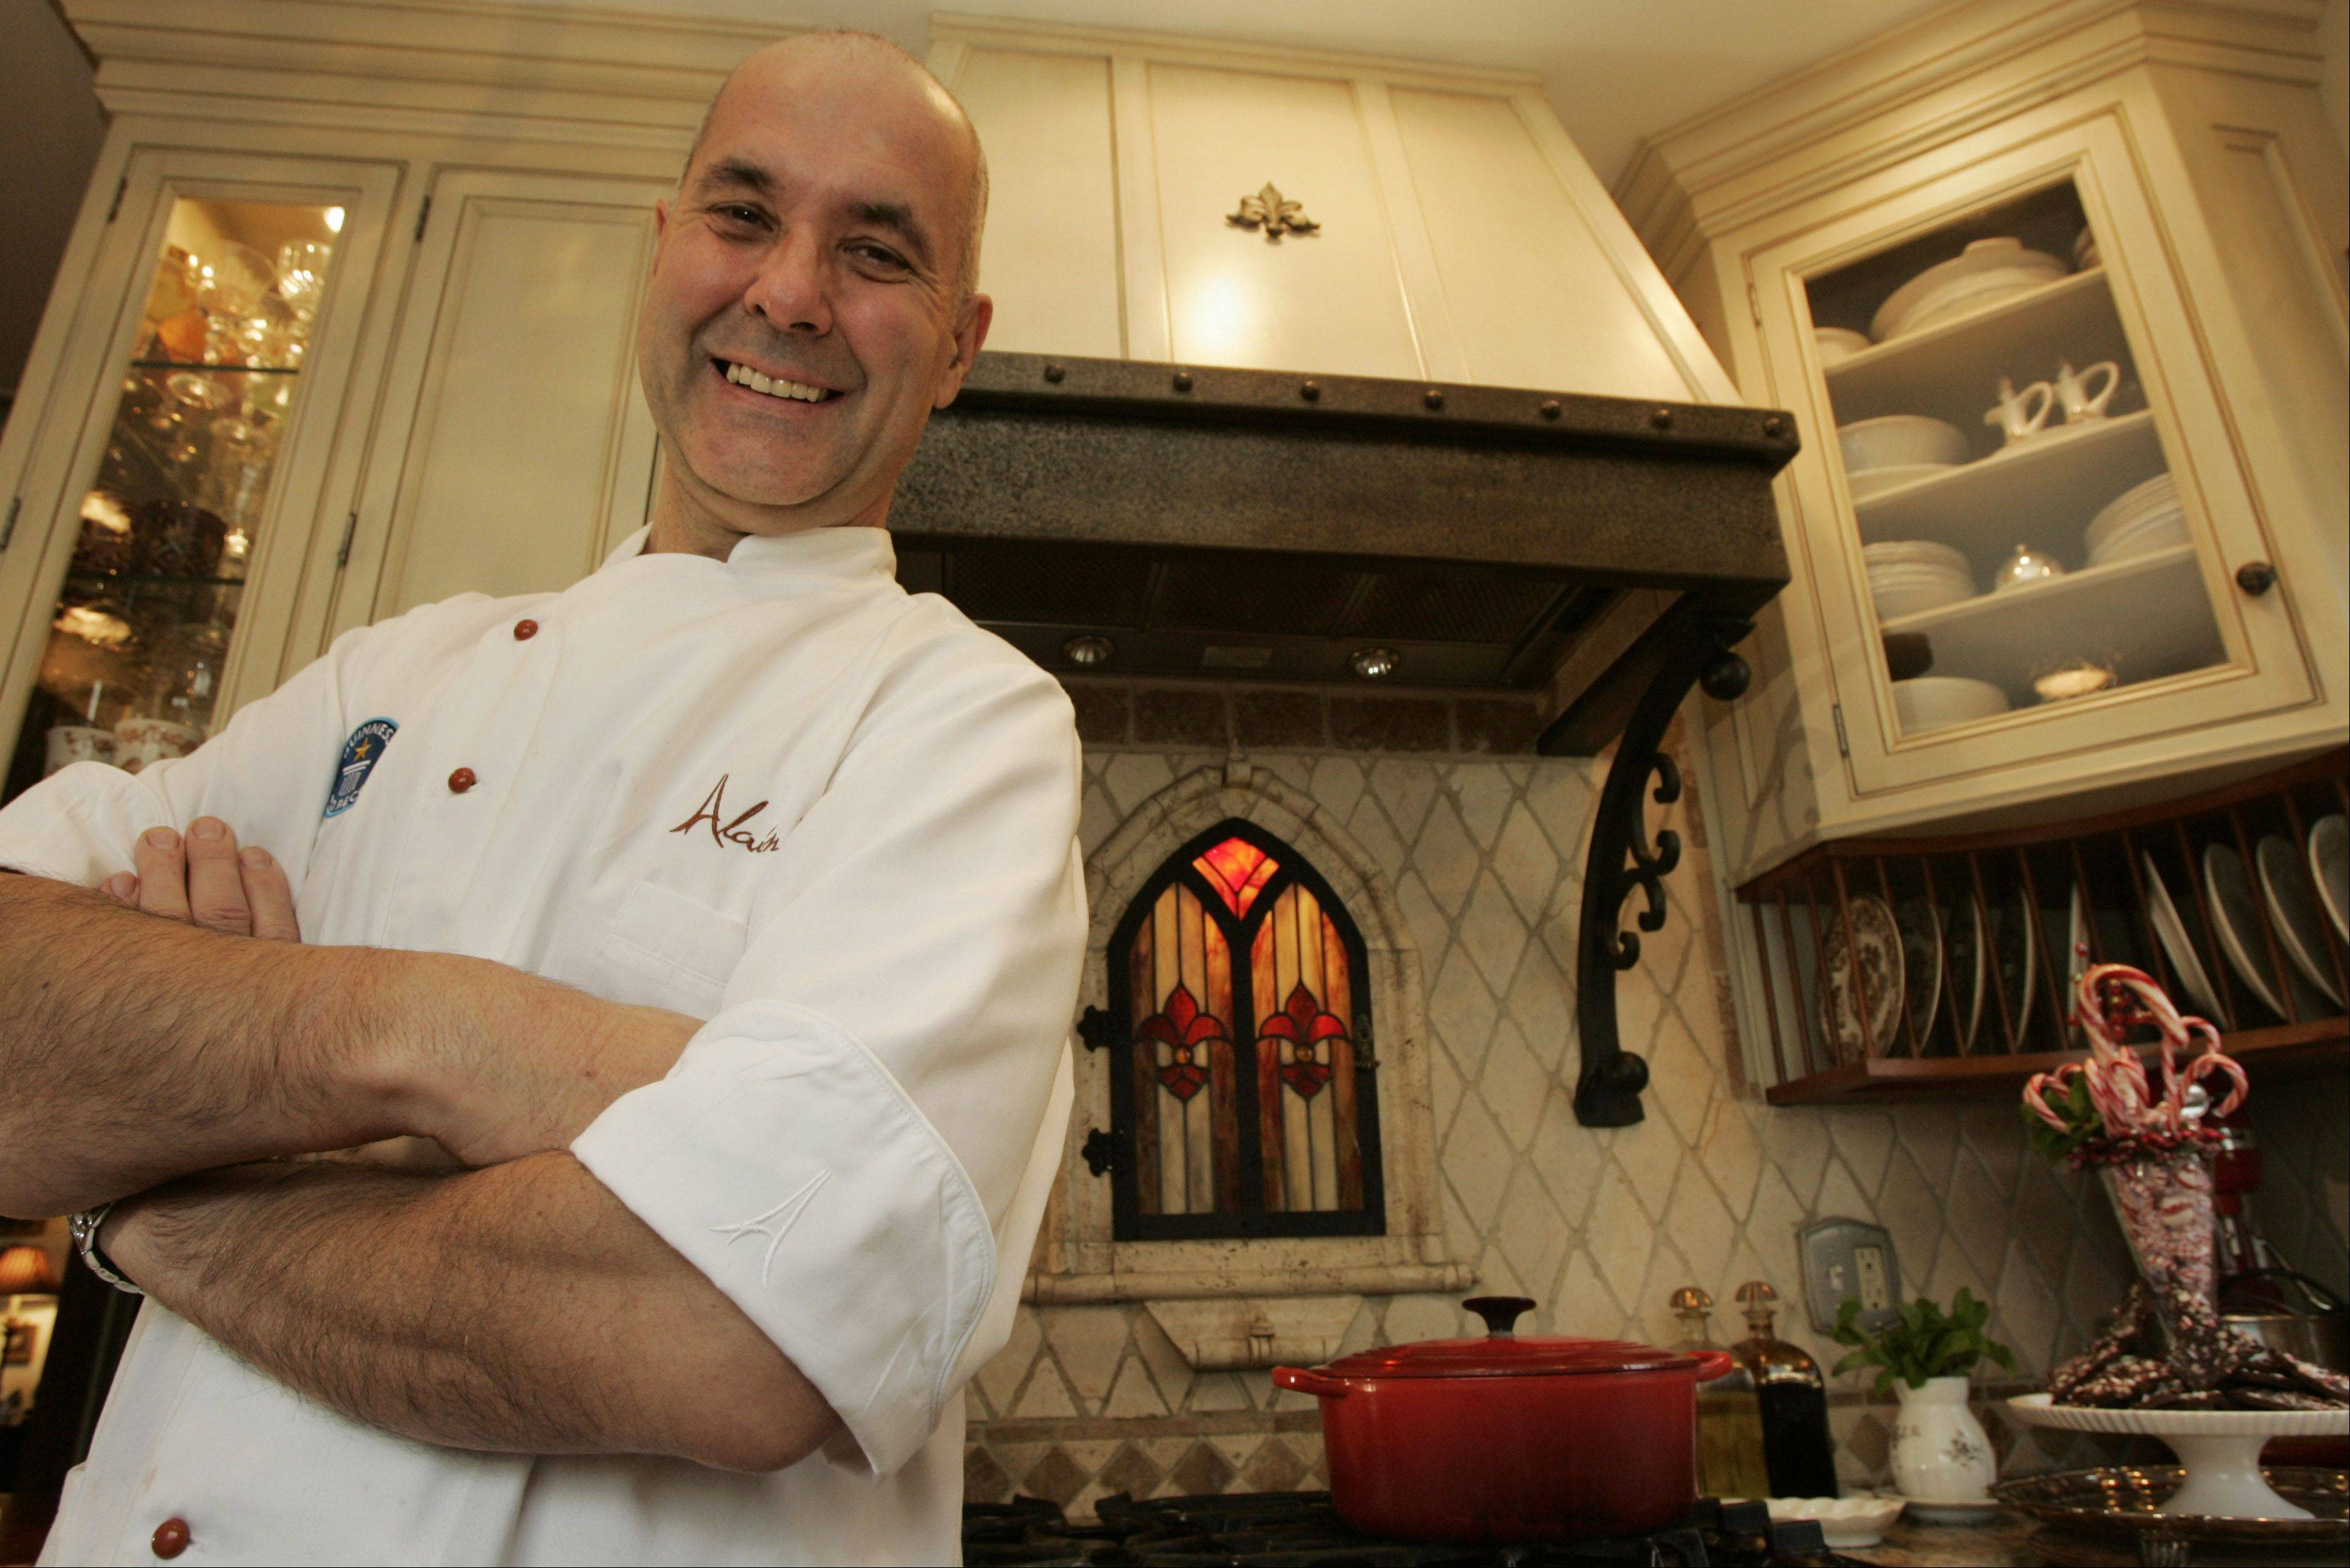 Alain Roby, Geneva pastry chef and owner of All Chocolate Kitchen, was named Pastry Chef of the Year 2013 by the Chicago Culinary Museum and will be inducted into its Chefs Hall of Fame later this year.